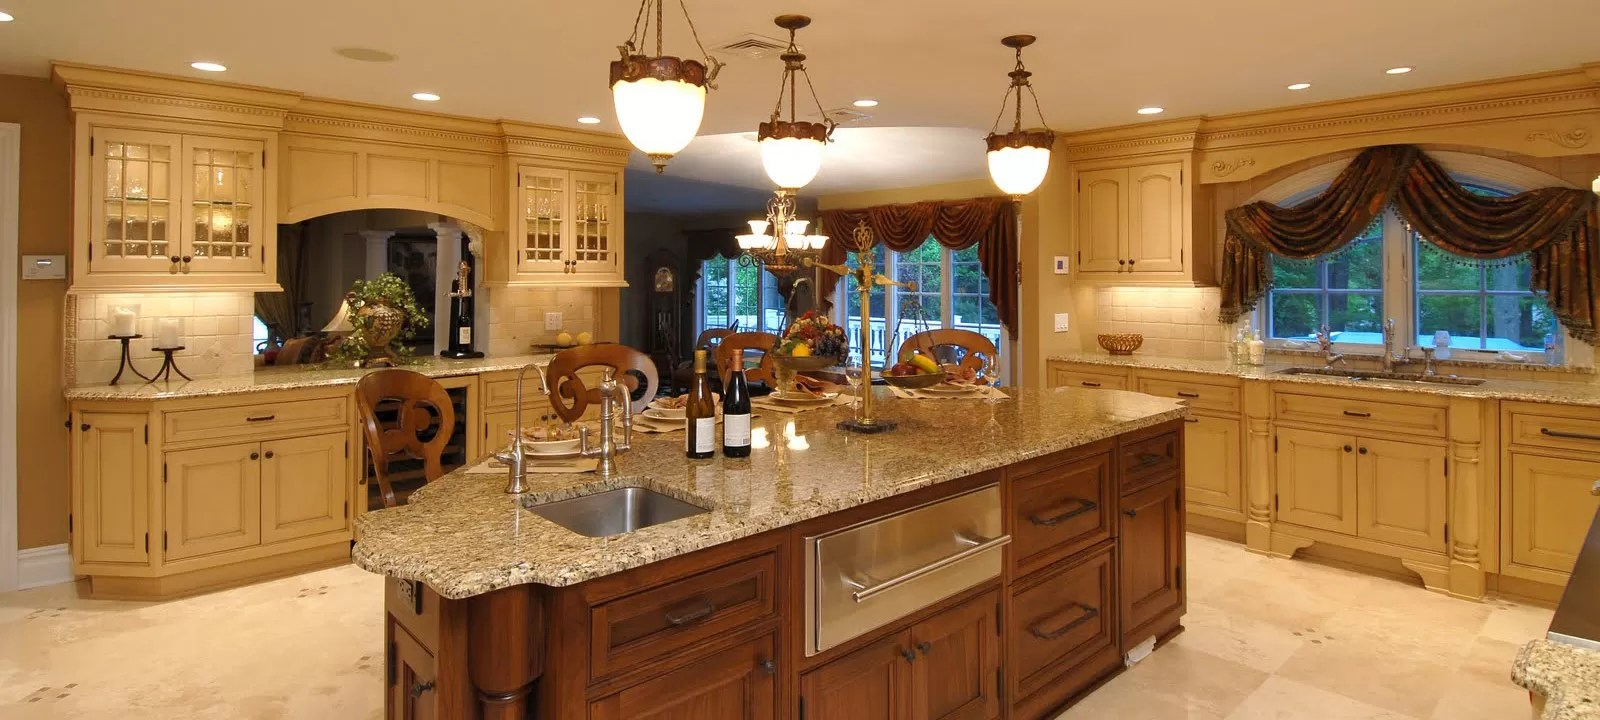 From Design to Complete Installation  Royal Kitchens  Baths